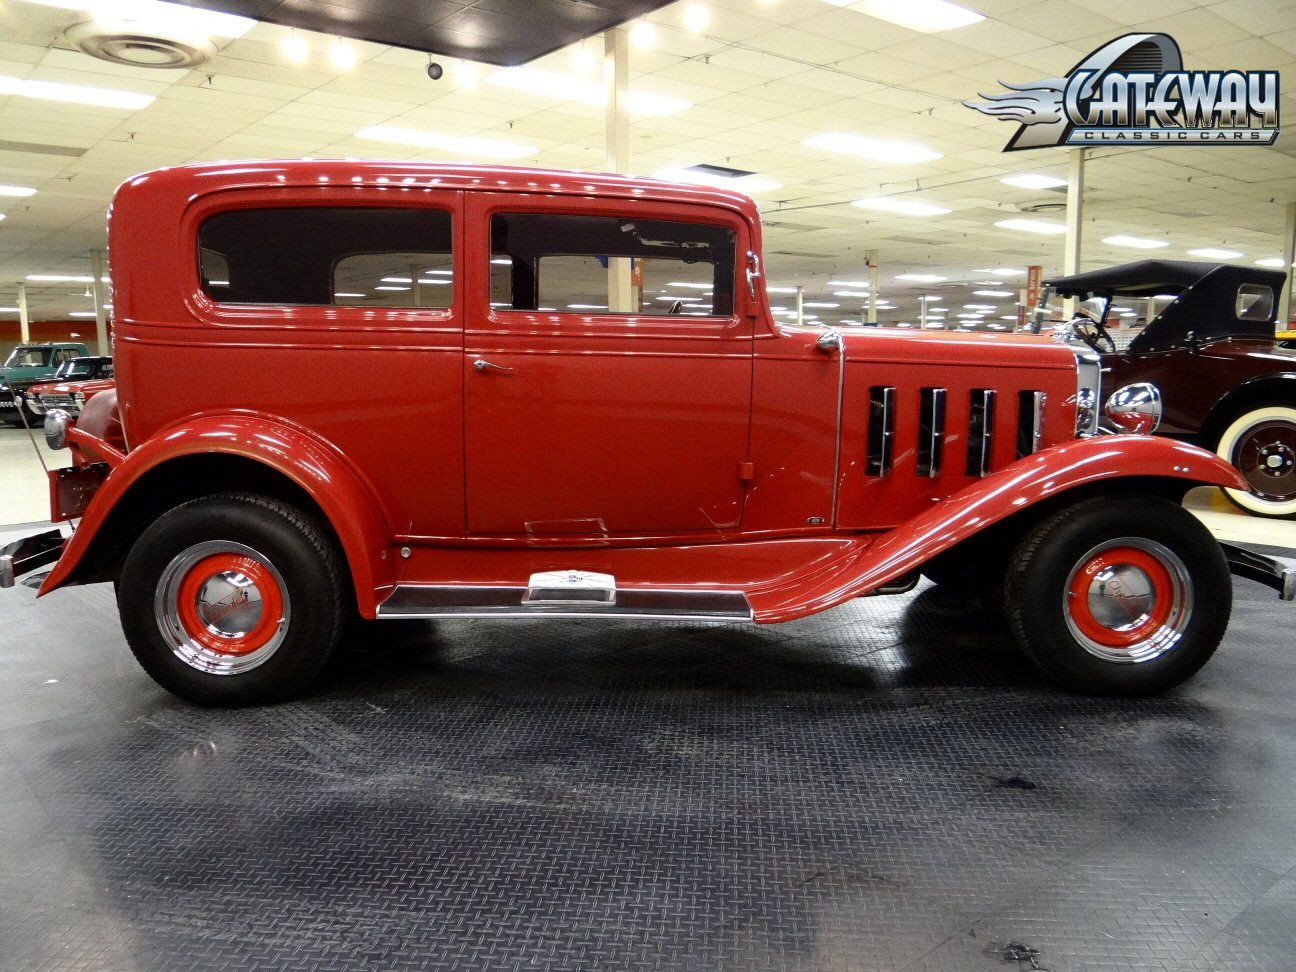 1932 chevy coupe for sale | 1932 Chevrolet Standard for Sale